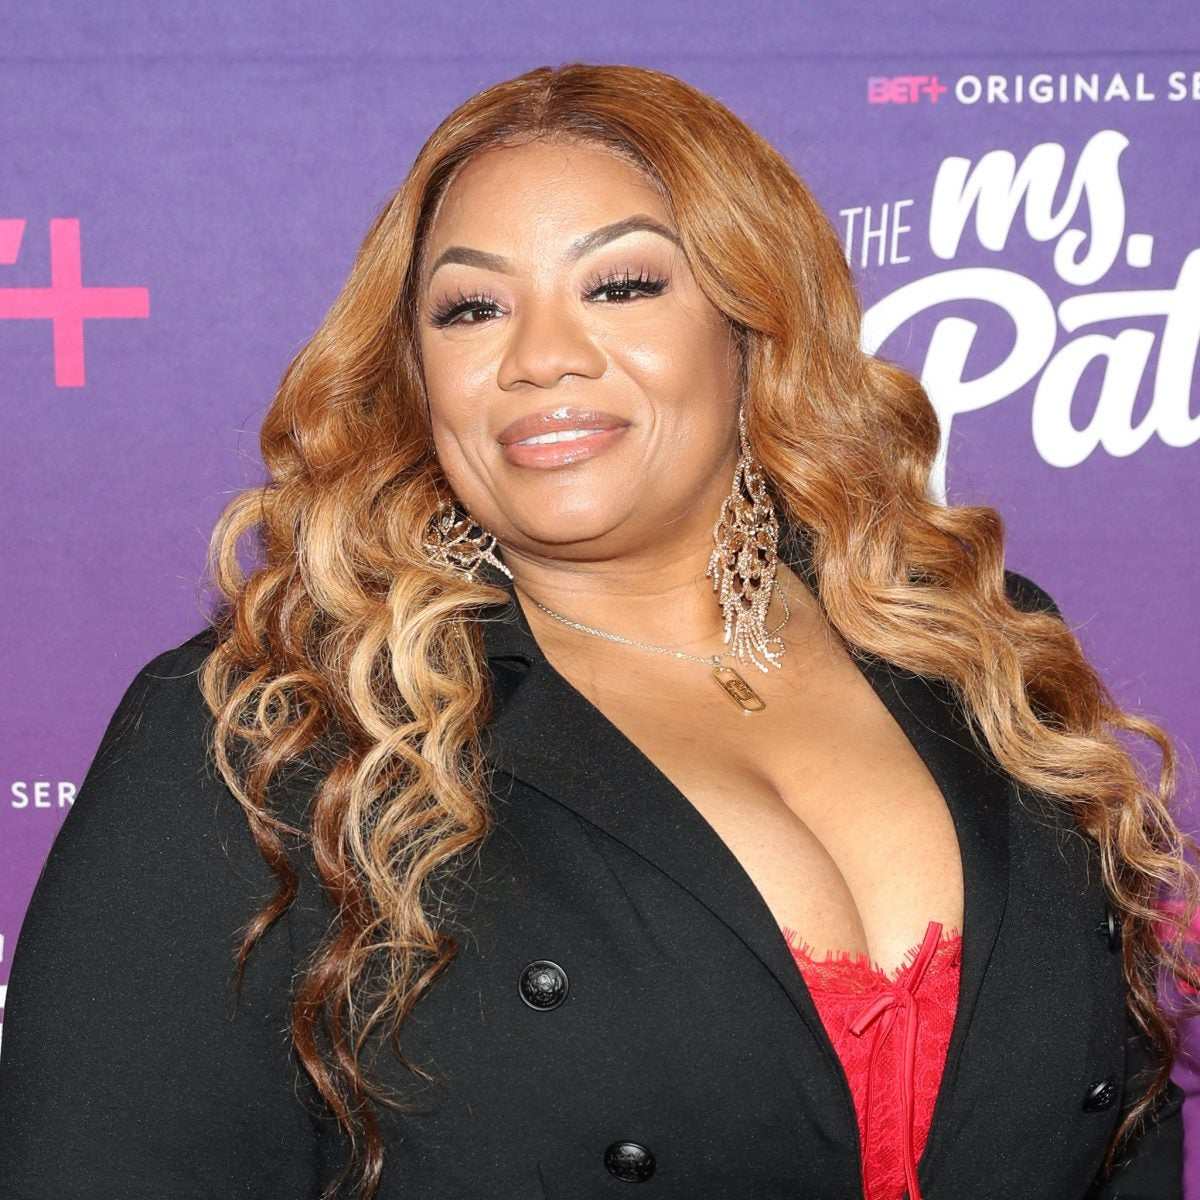 Comedienne Ms. Pat Gets Real With Her New Hit Comedy 'The Ms. Pat Show'